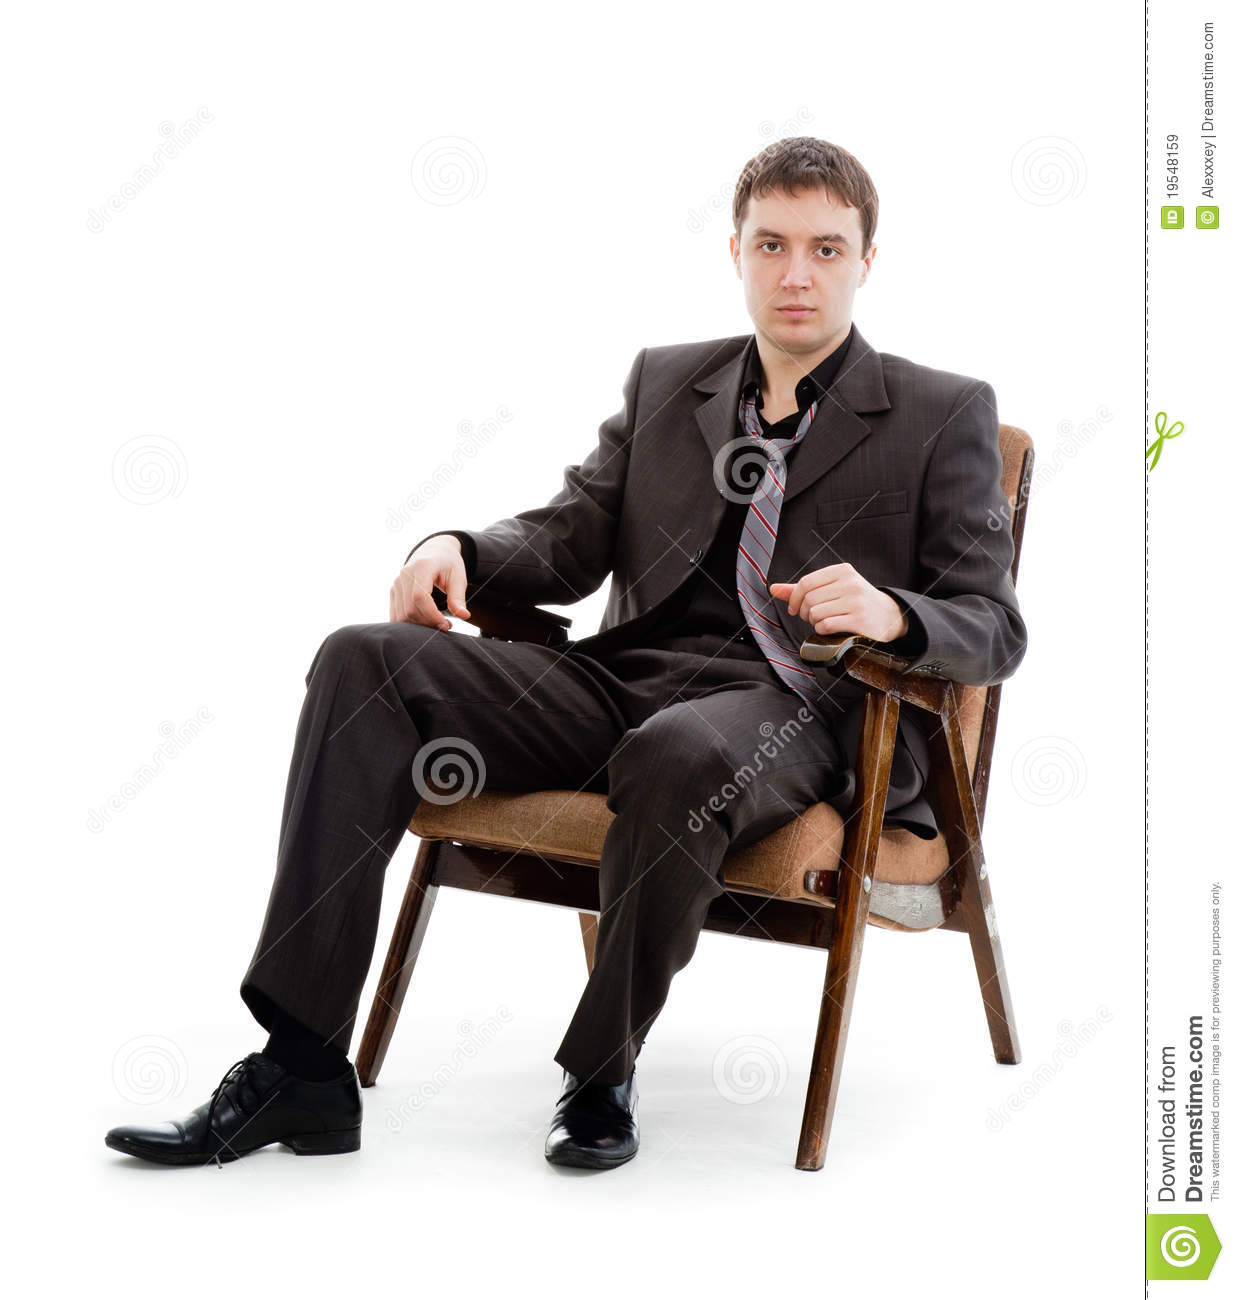 sit in your chair composite adirondack rocking chairs a young man suit and tie sitting stock